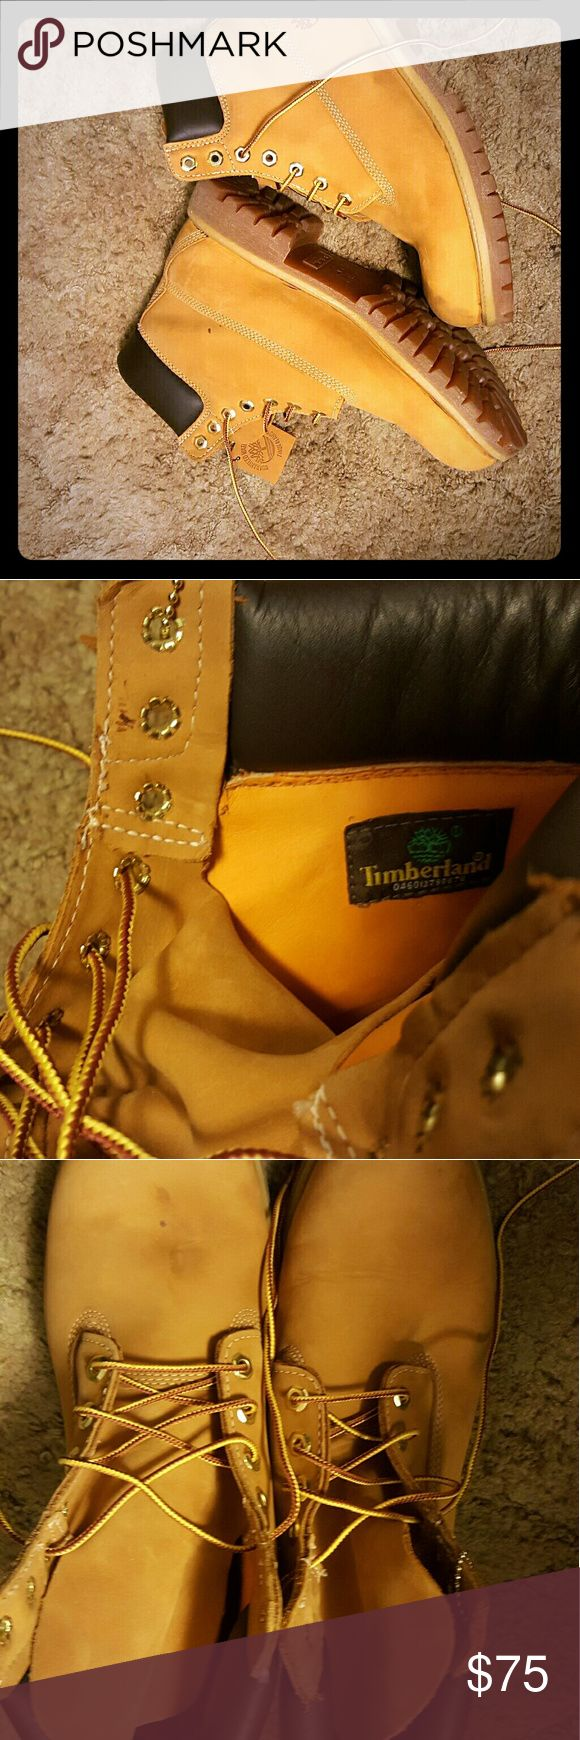 Brand new size 10M timberland men boots These are size 10M, brand new, men's timberland boots. They have a tiny scuff on one boot which is in the picture. Timberland Shoes Boots